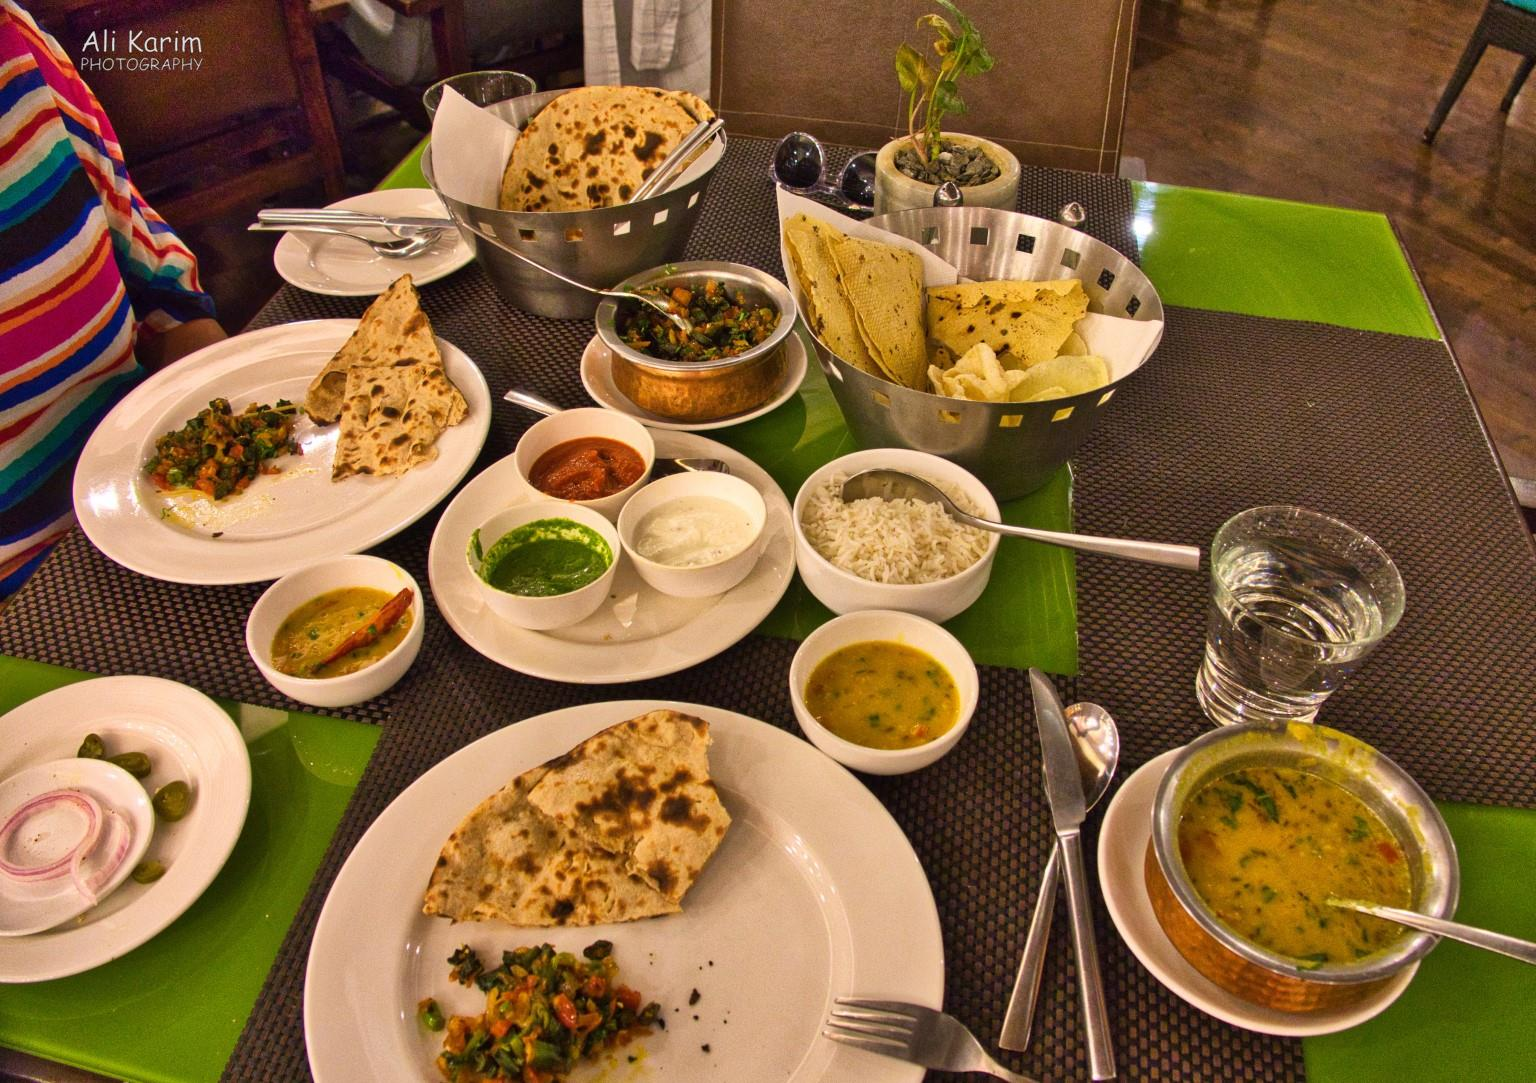 Pushkar, Rajasthan Vegetarian dinner at the Westin, Rajasthani dishes